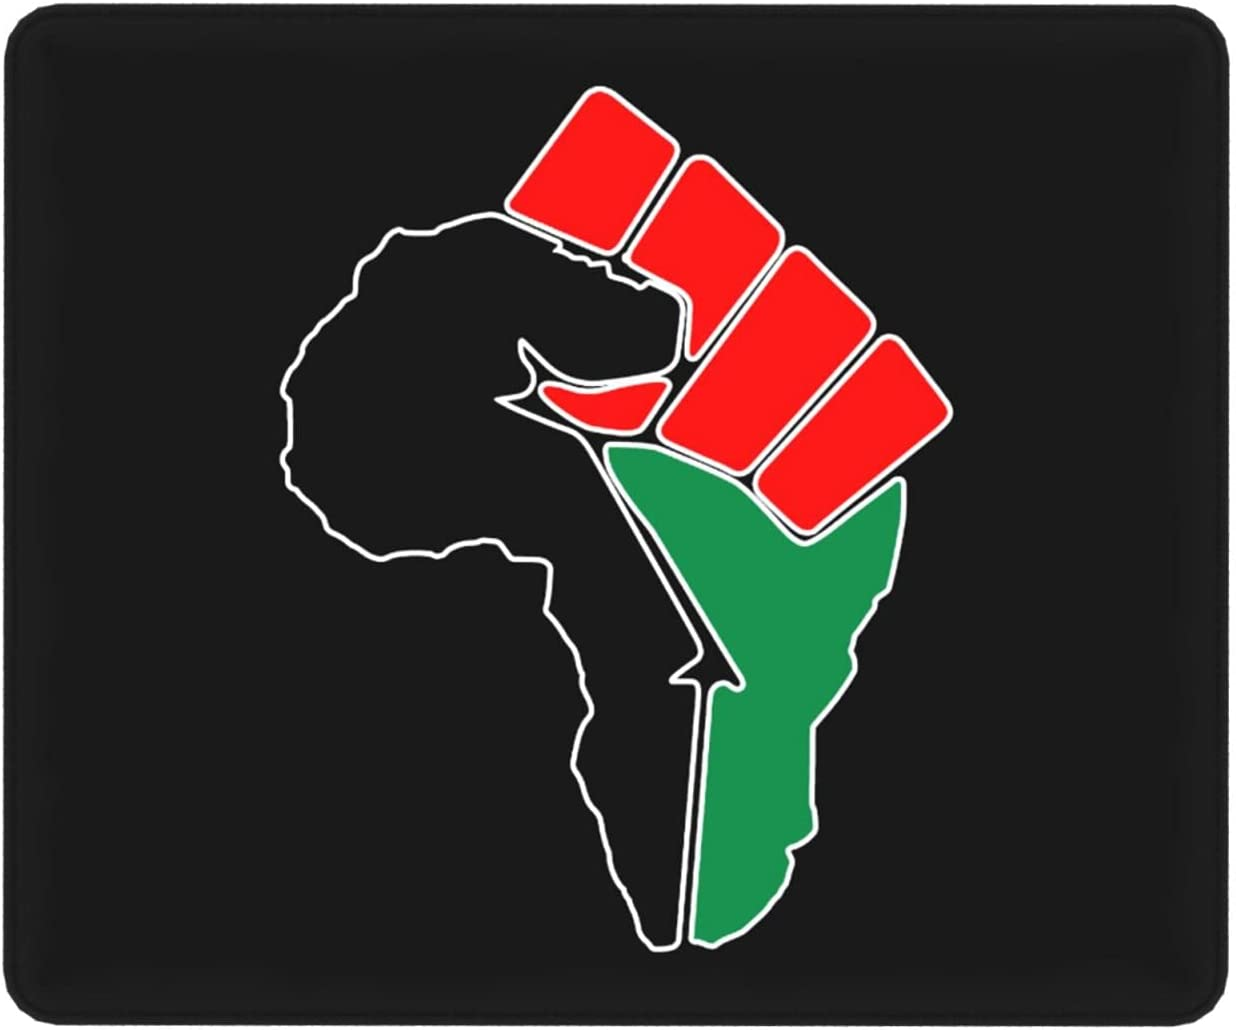 BlackPower Fist Pan African Colors Non-Slip Mouse Pad Flag0 Super sale period limited Max 52% OFF Ru